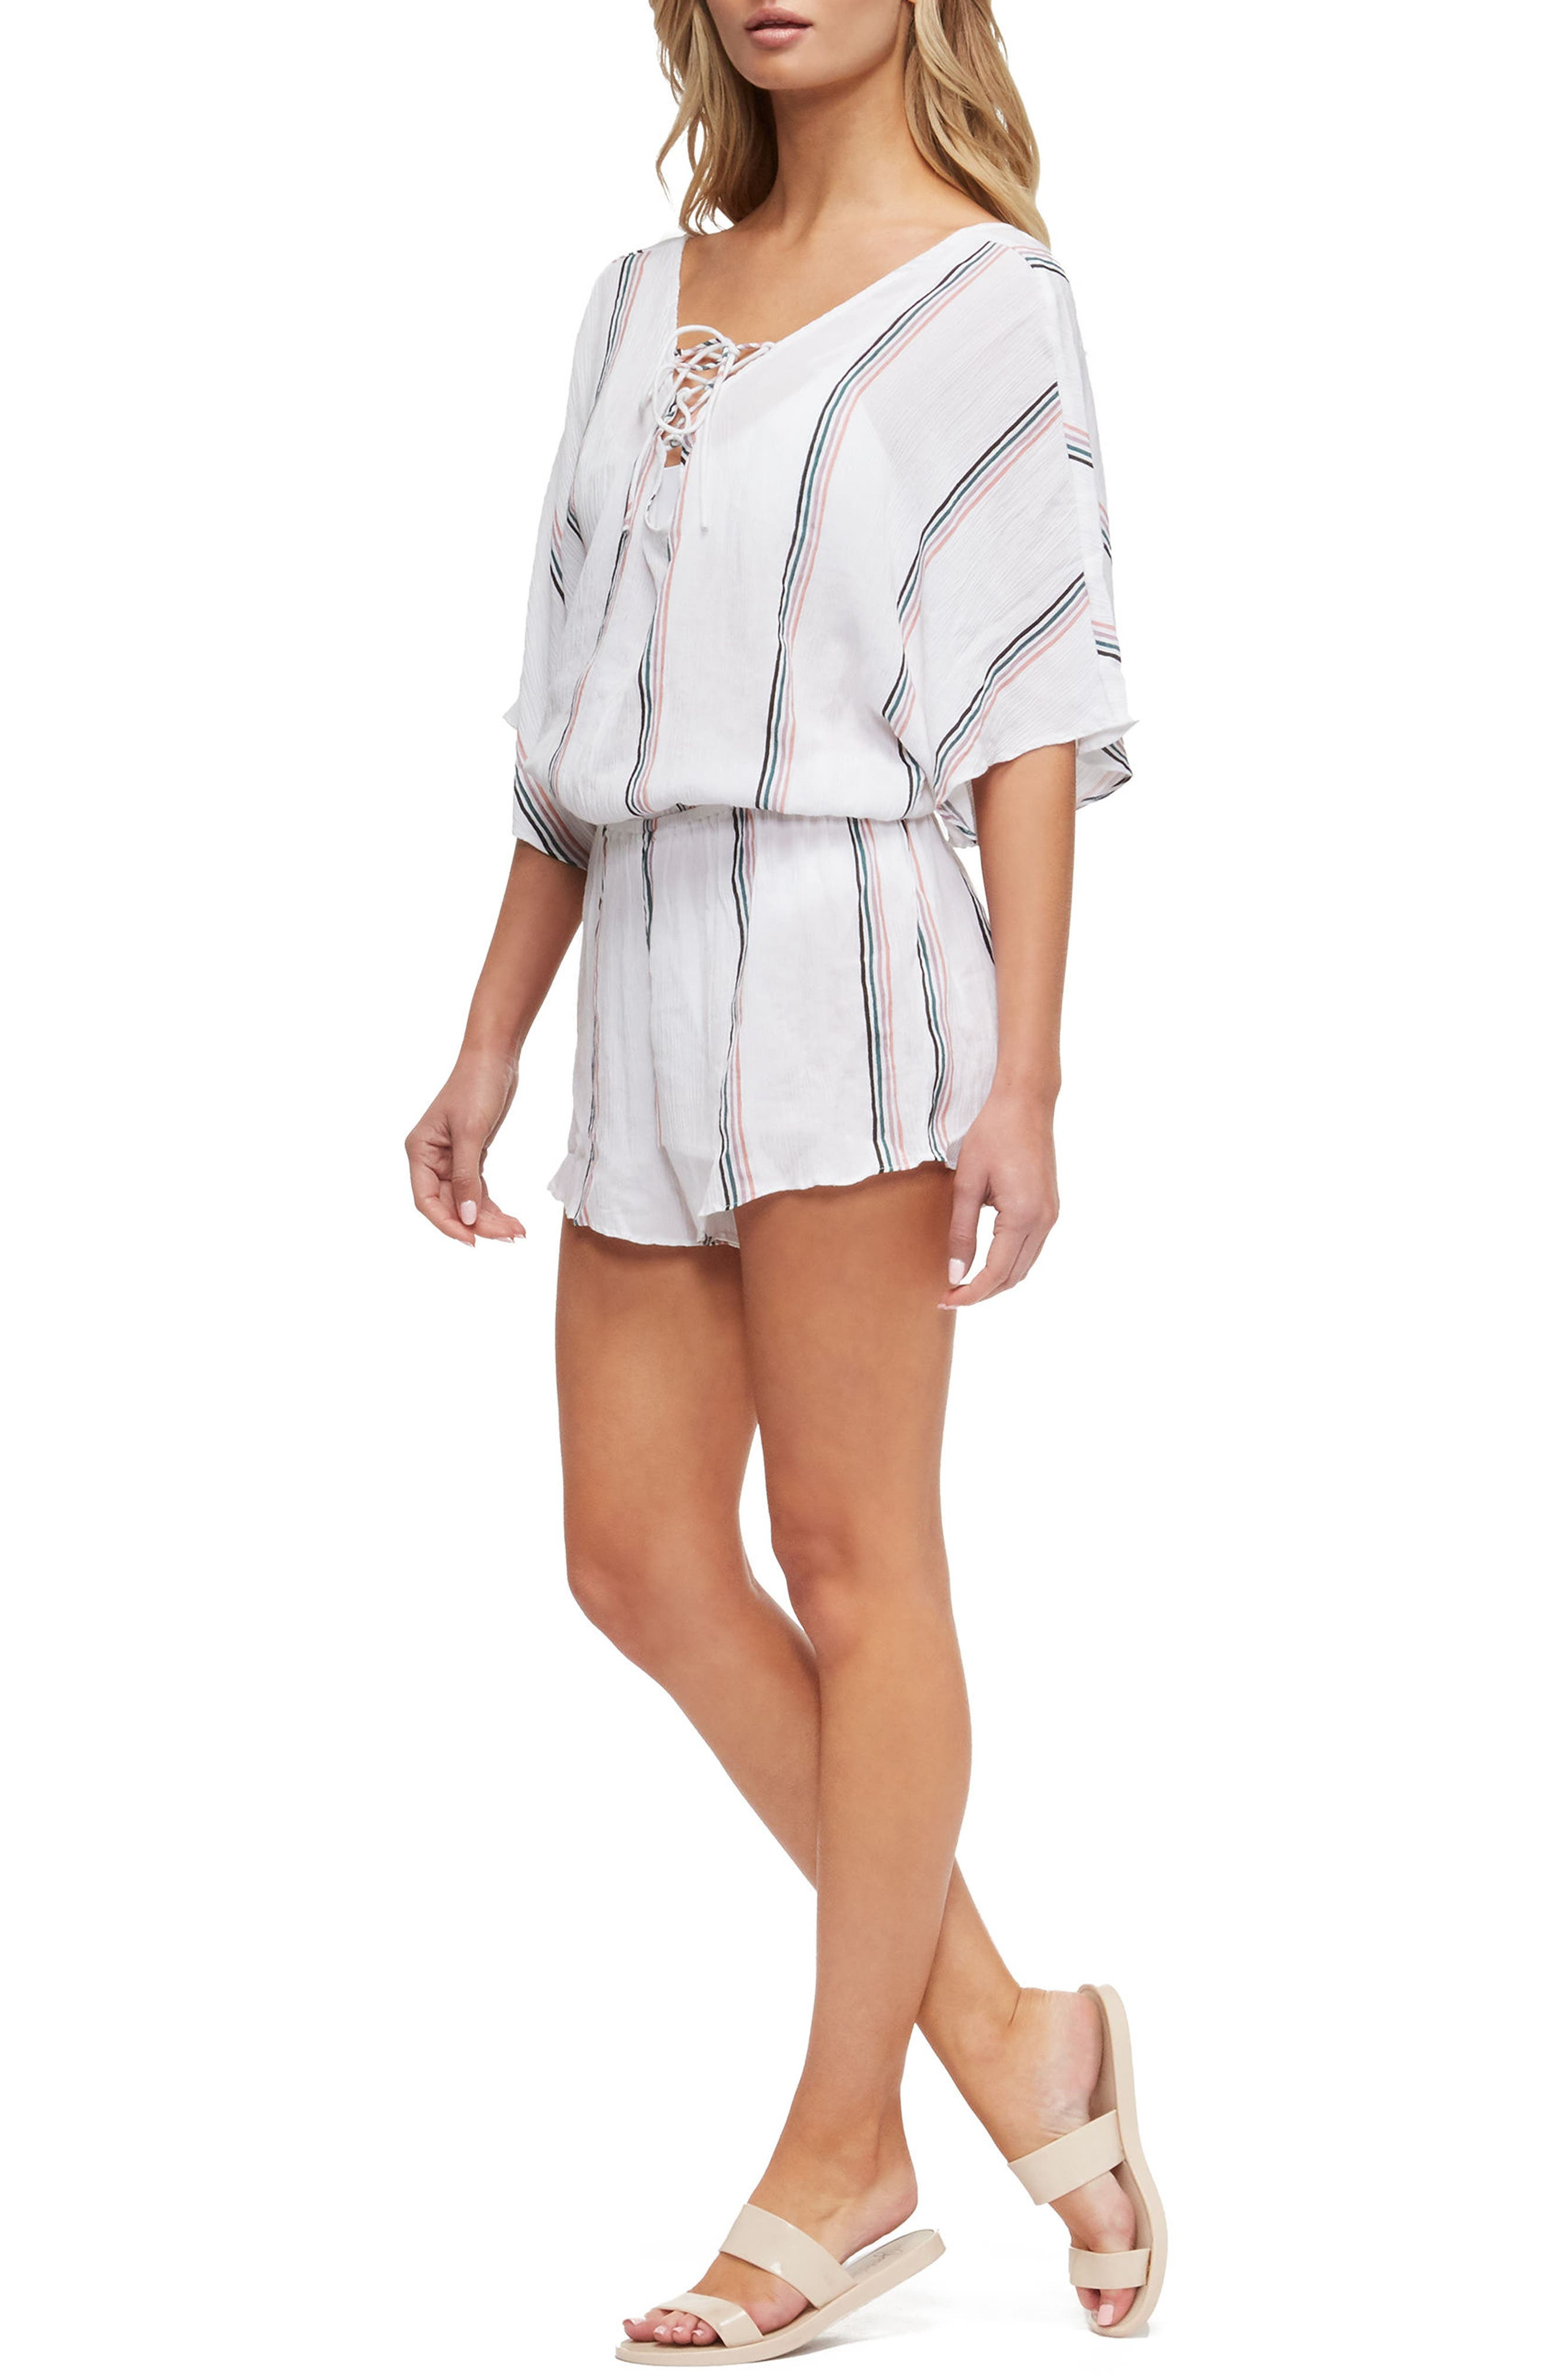 Harmony Cover-Up Romper,                             Alternate thumbnail 3, color,                             831